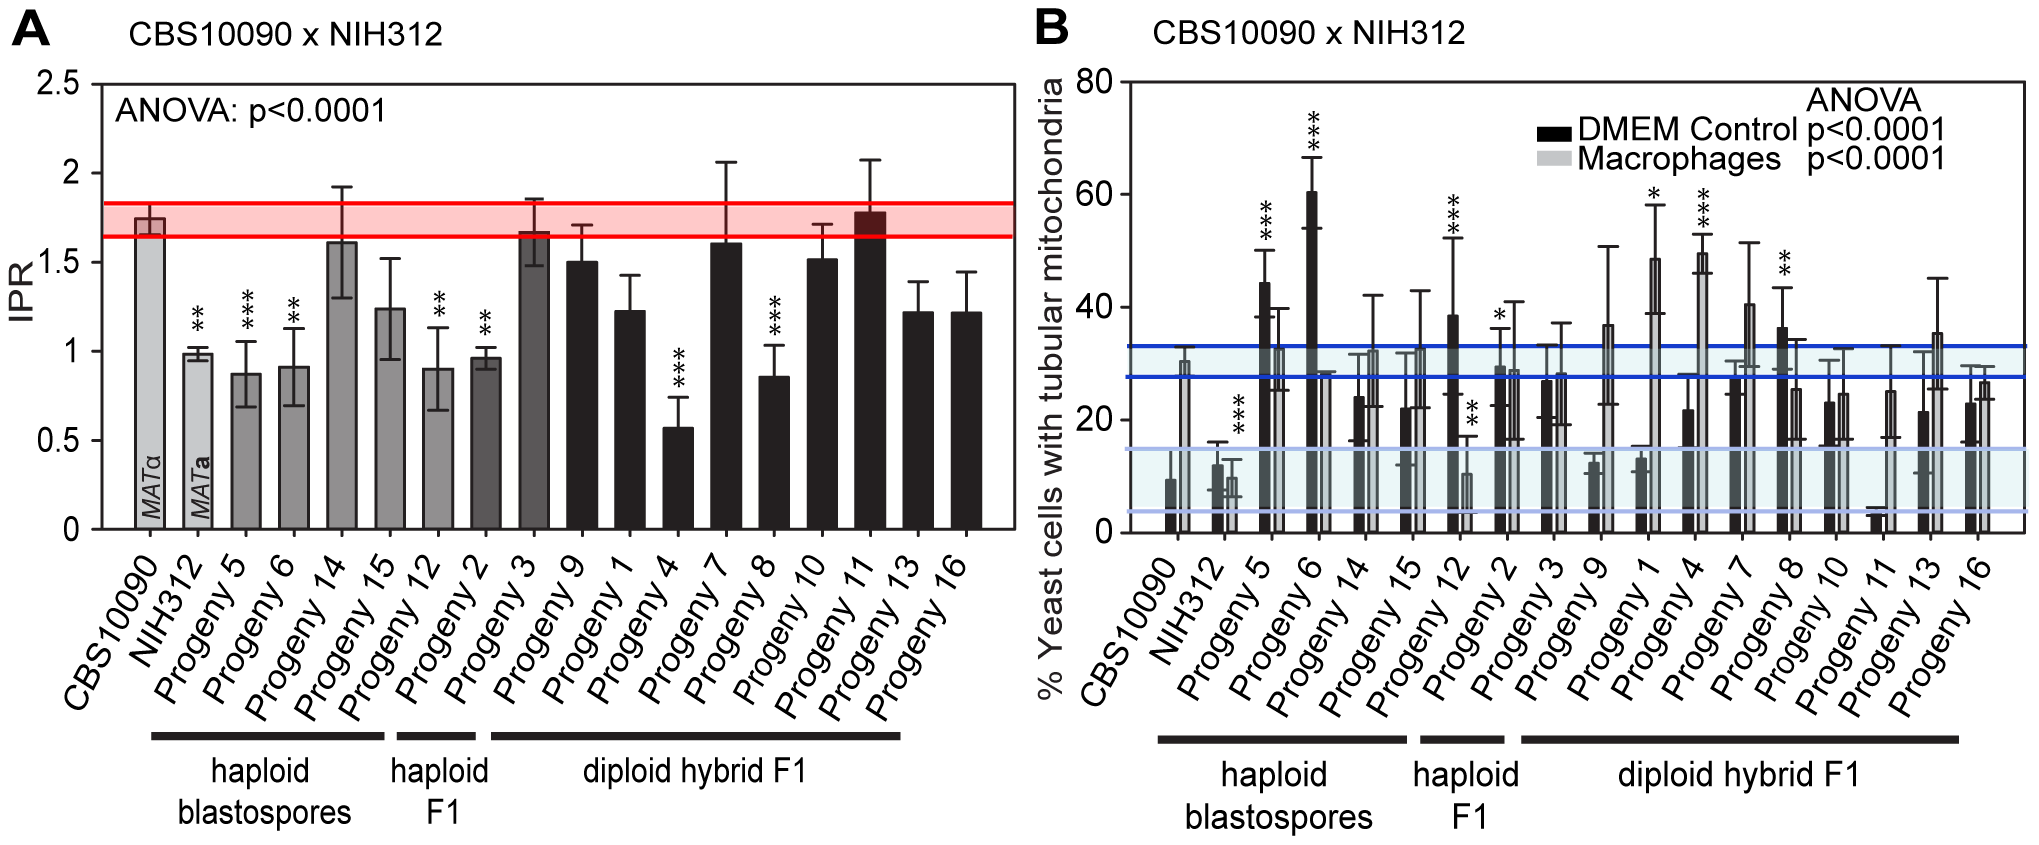 Macrophage interaction of progeny from outgroup crosses between CBS10090 and NIH312.